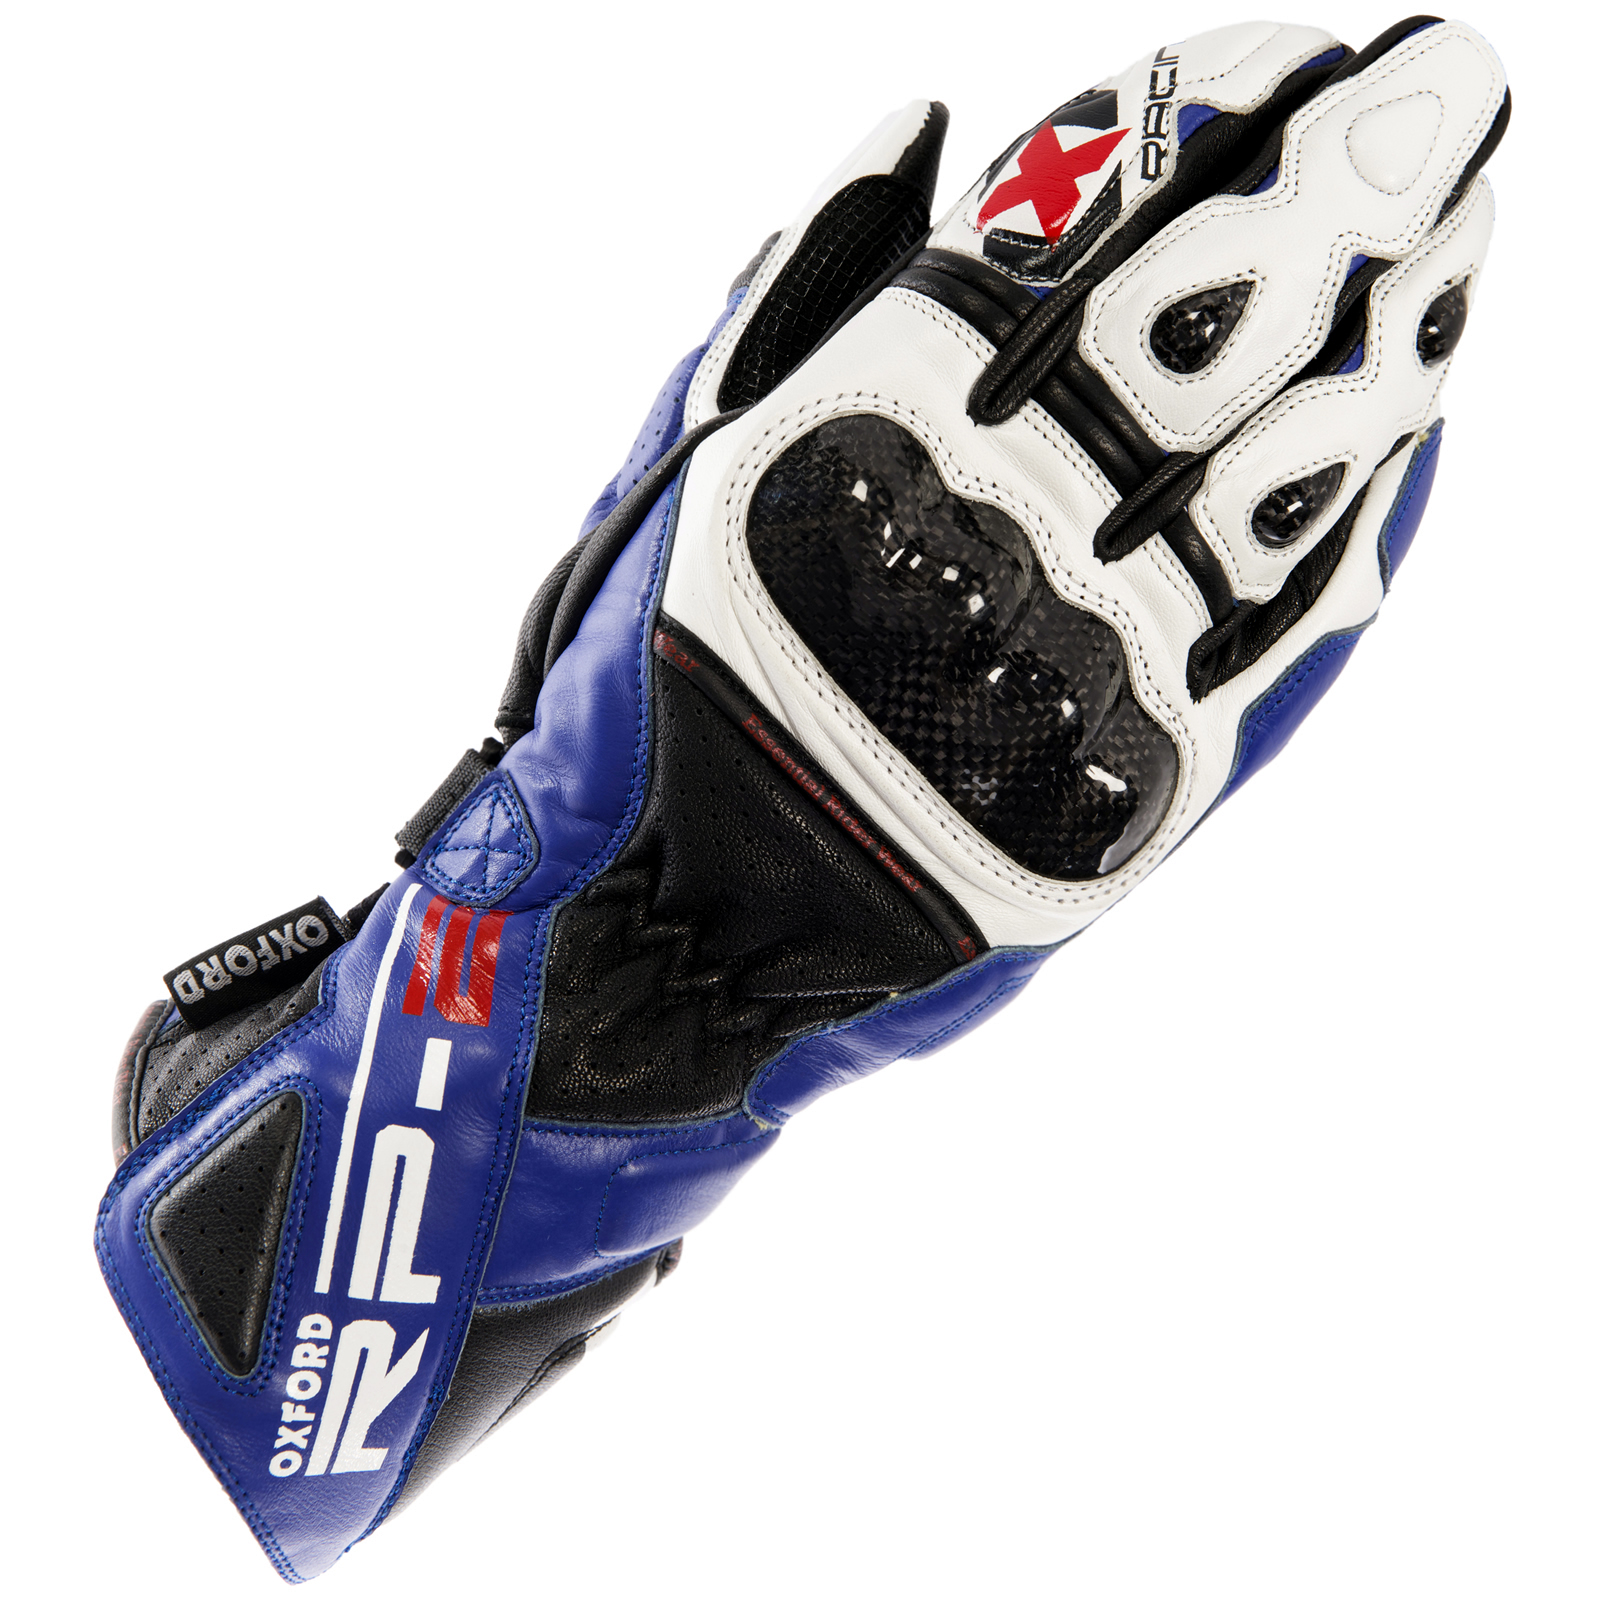 Motorcycle gloves external seams - Oxford Rp 2 Leather Armoured Summer Motorcycle Sports